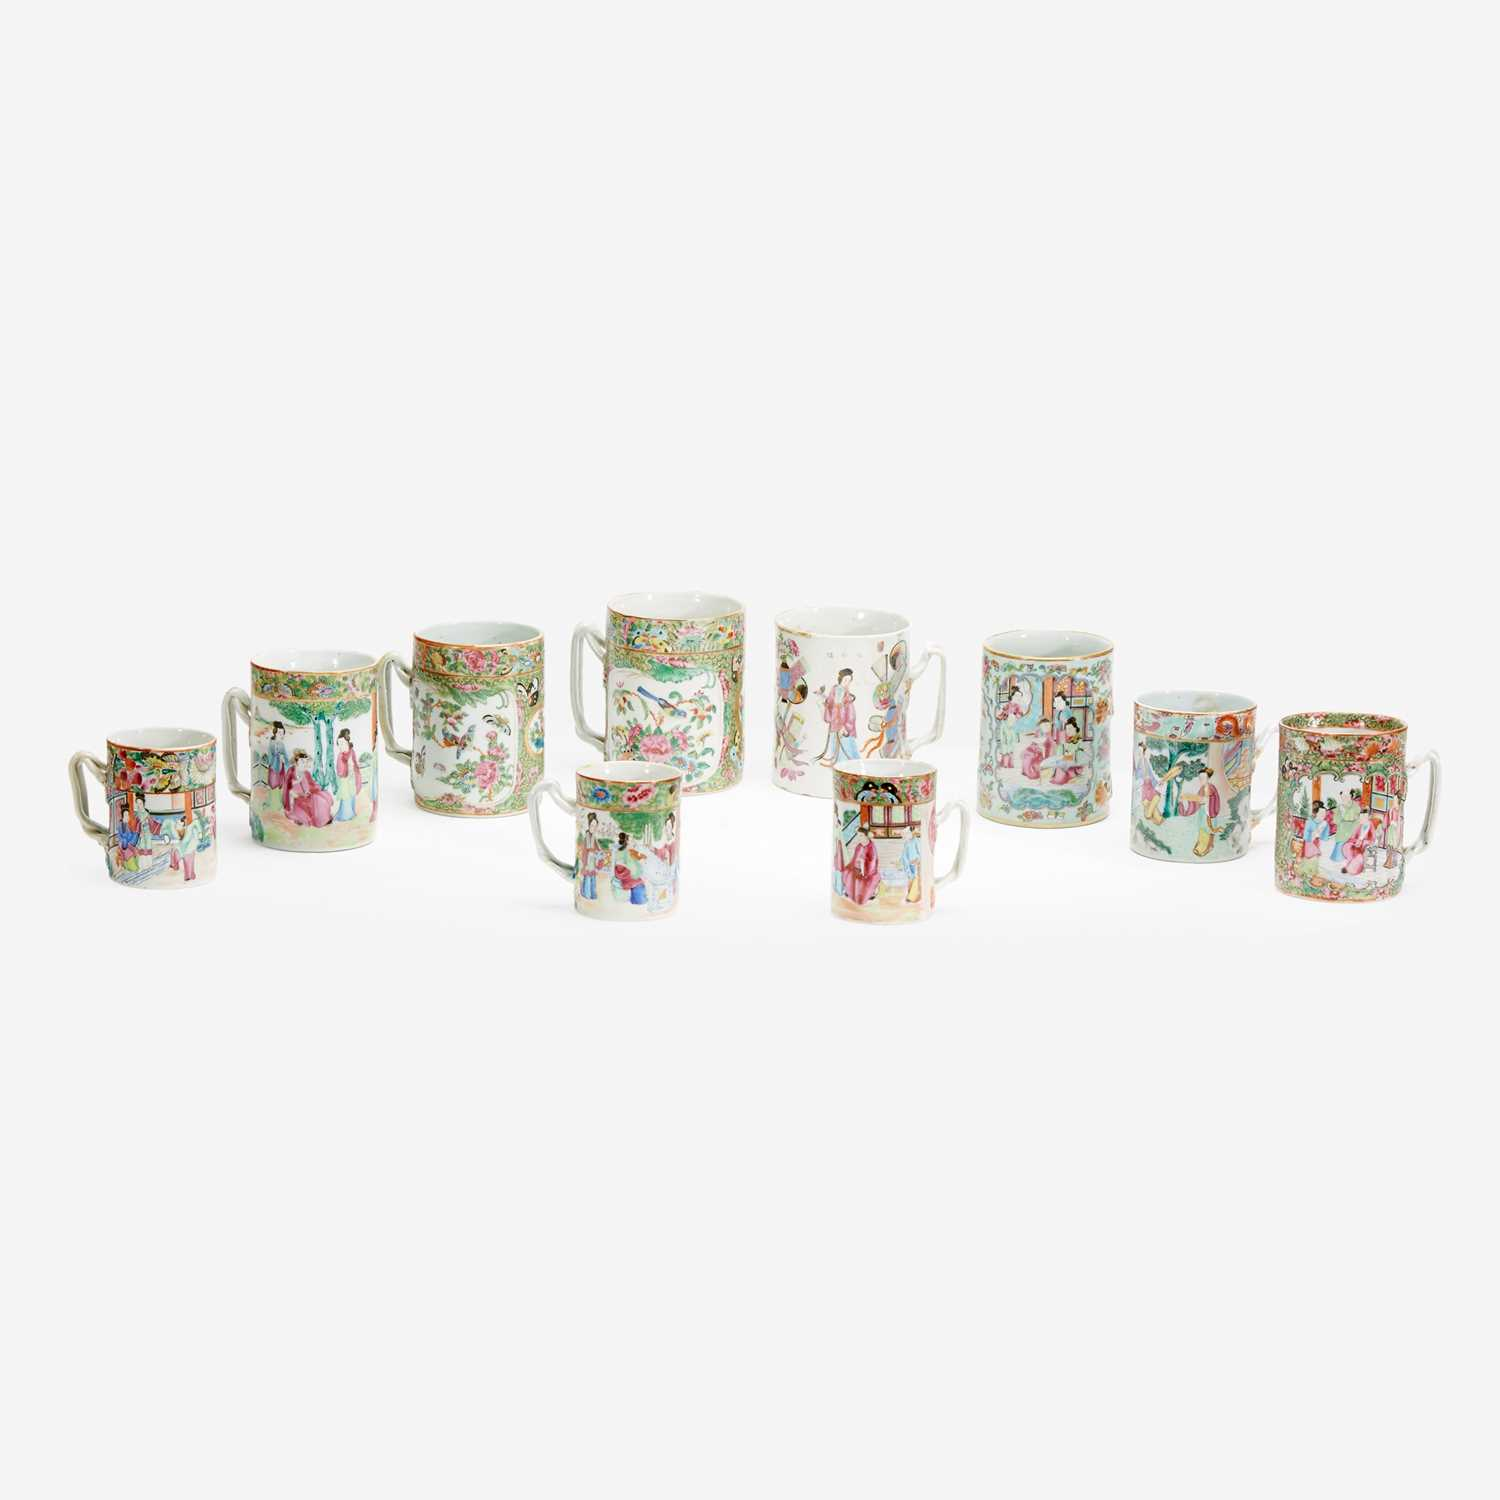 Lot 77 - A Collection of Ten Chinese Export Porcelain Famille Rose and Rose Medallion Coffee Cans